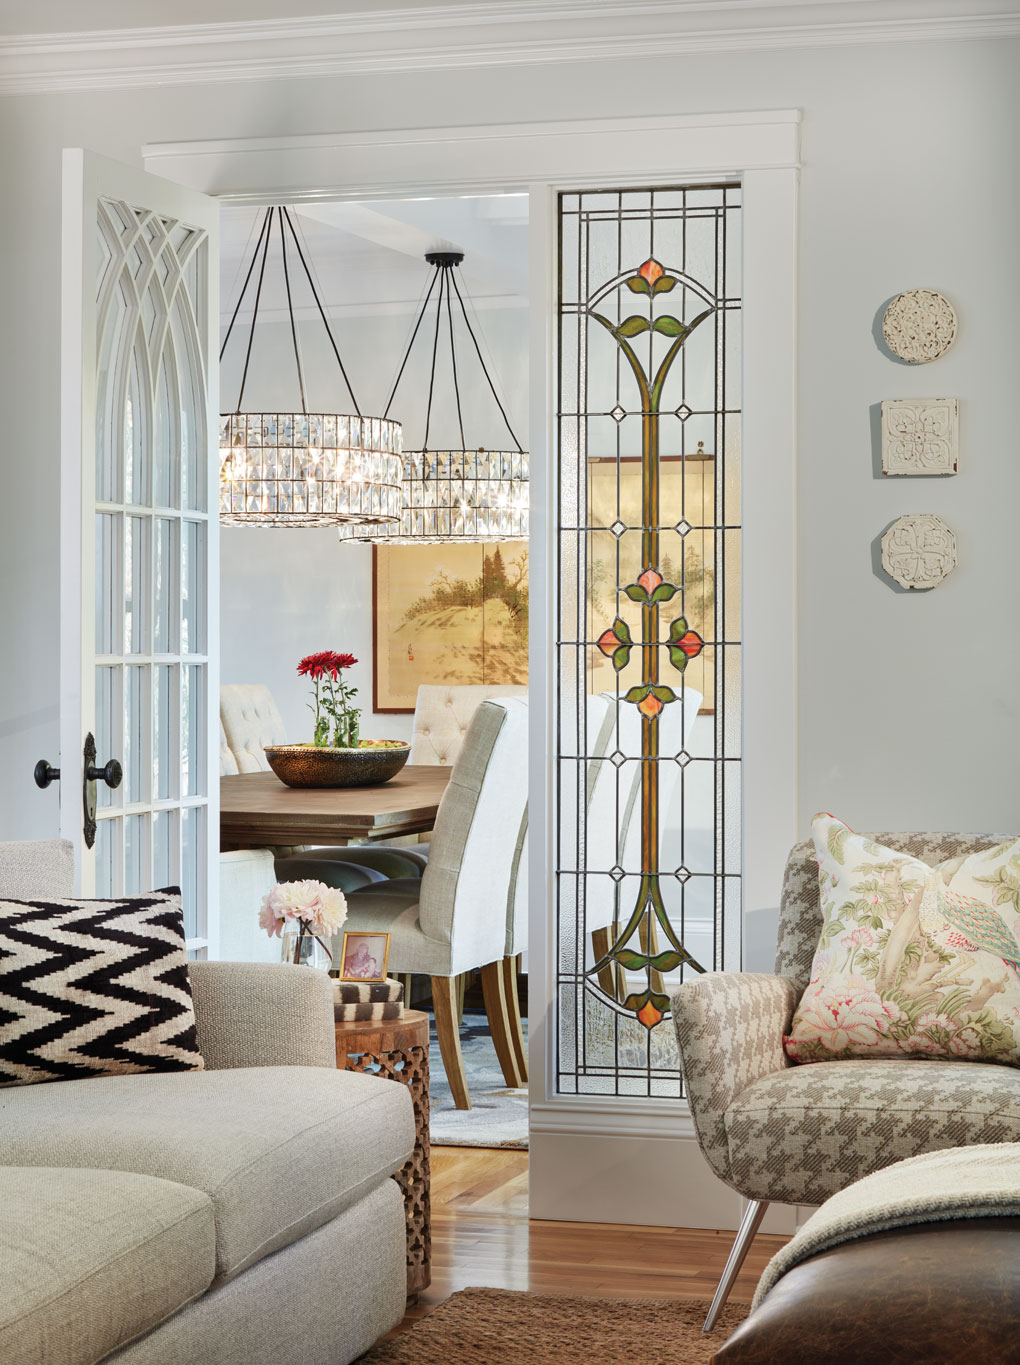 A stained glass window separates the family and dining rooms.